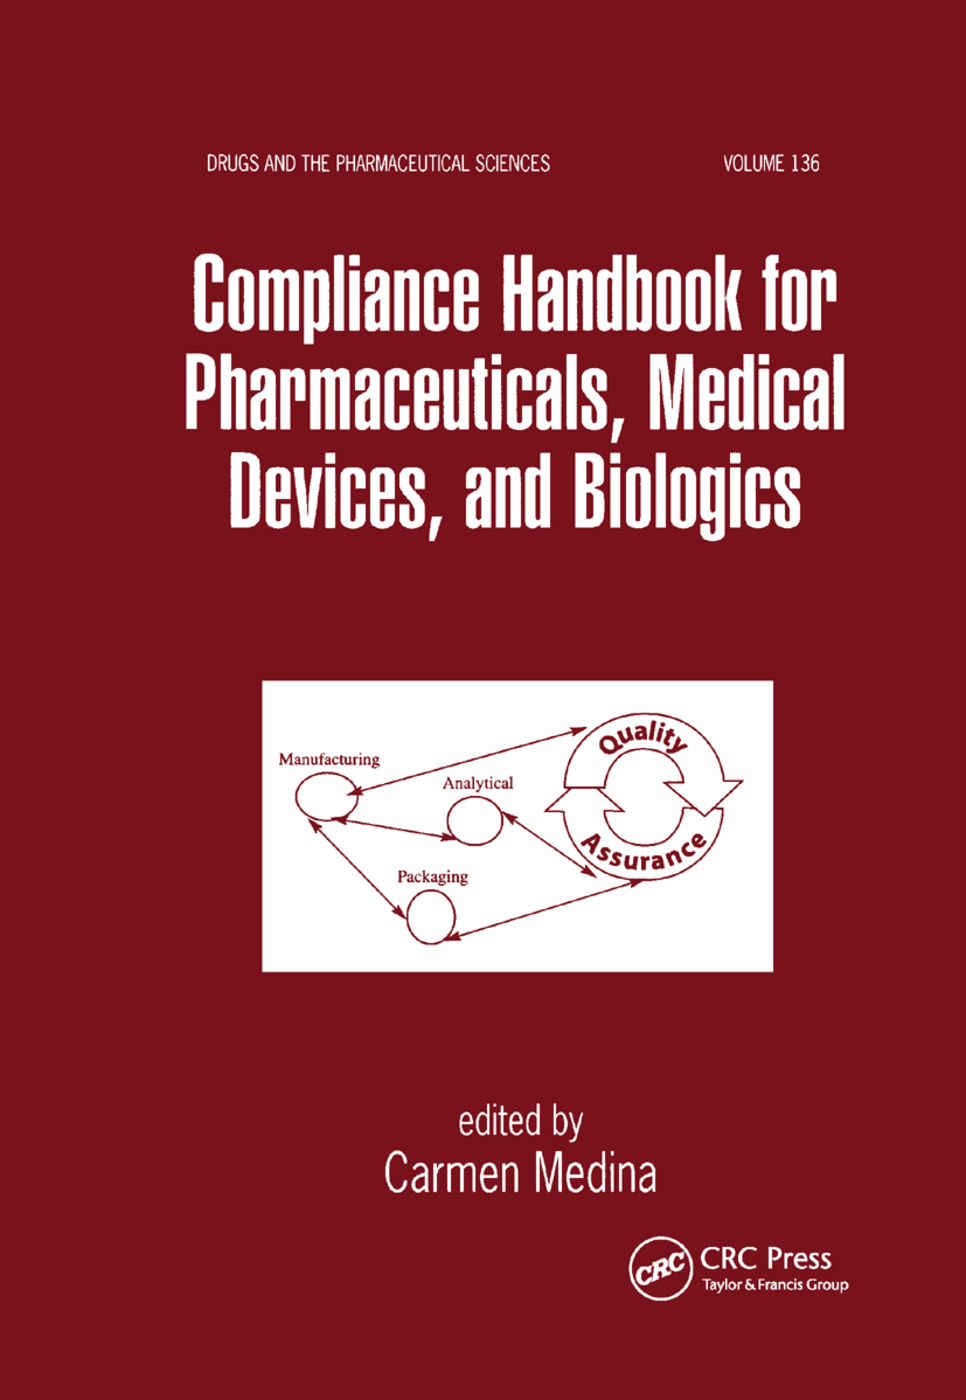 Compliance Handbook for Pharmaceuticals, Medical Devices, and Biologics: 1st Edition (Paperback) book cover